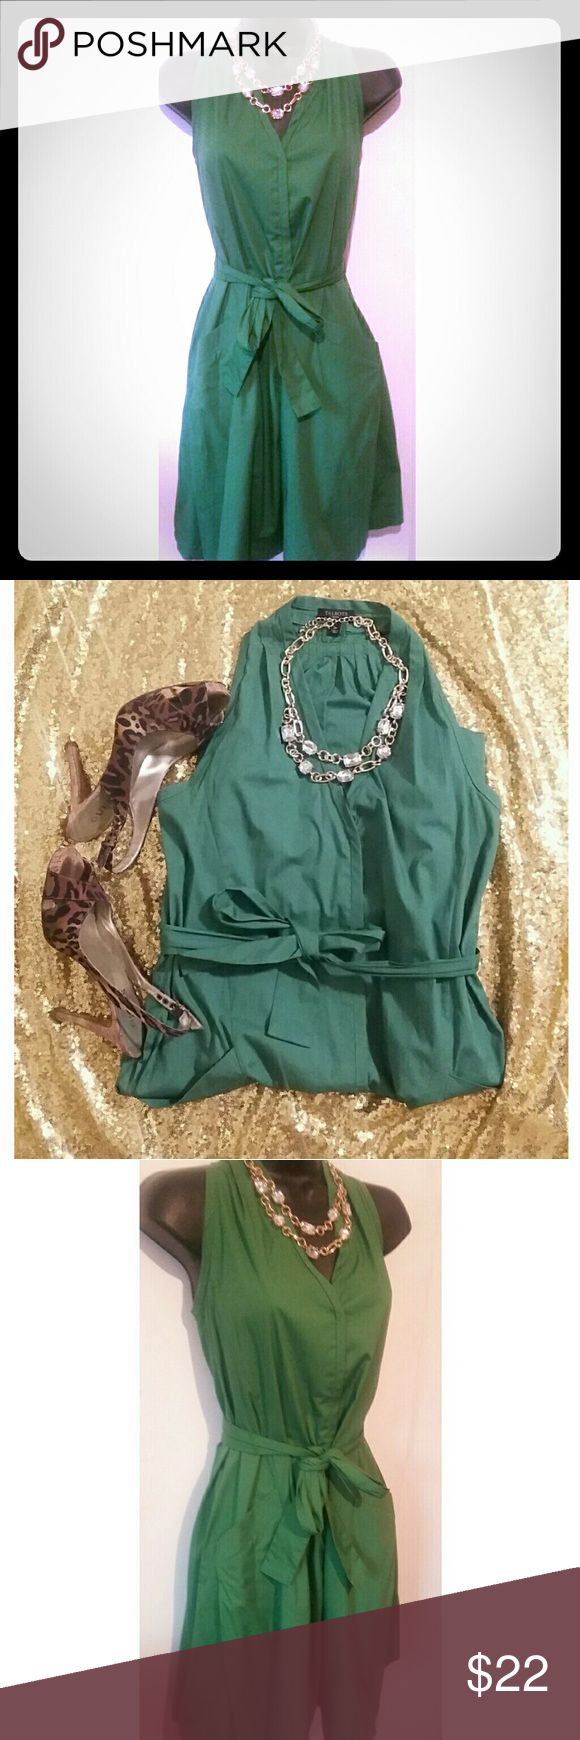 Green Talbots Petite Dress In Size 2P Green Talbots A-Line  Petite Dress In Size 2. The Dress Is Cotton Material, has a removable belt. It also has pockets. In excellent condition. Talbots Dresses Midi